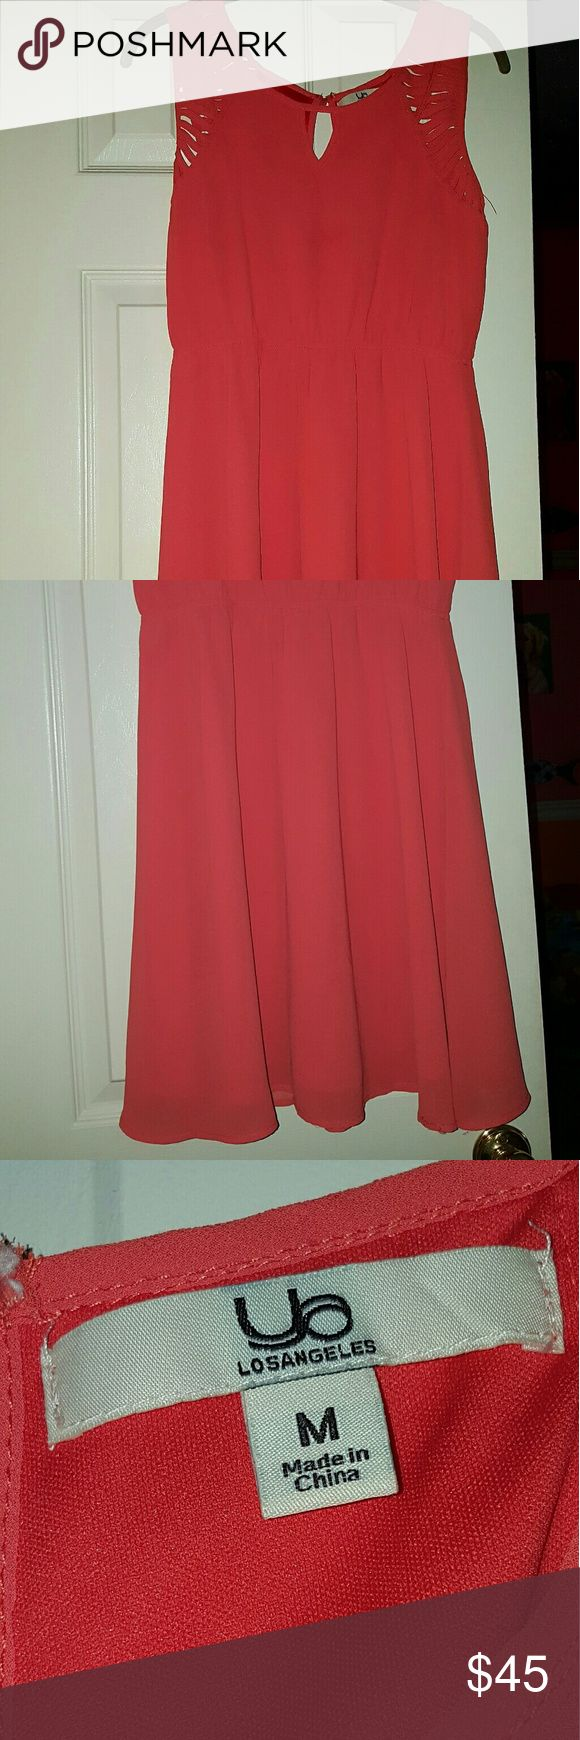 Coral sundress M Coral color Medium midi sundress, NEW! Great fit, looser so you can feel comfortable the entire day! Perfect with a pair of wedges or even flipflops! Dresses